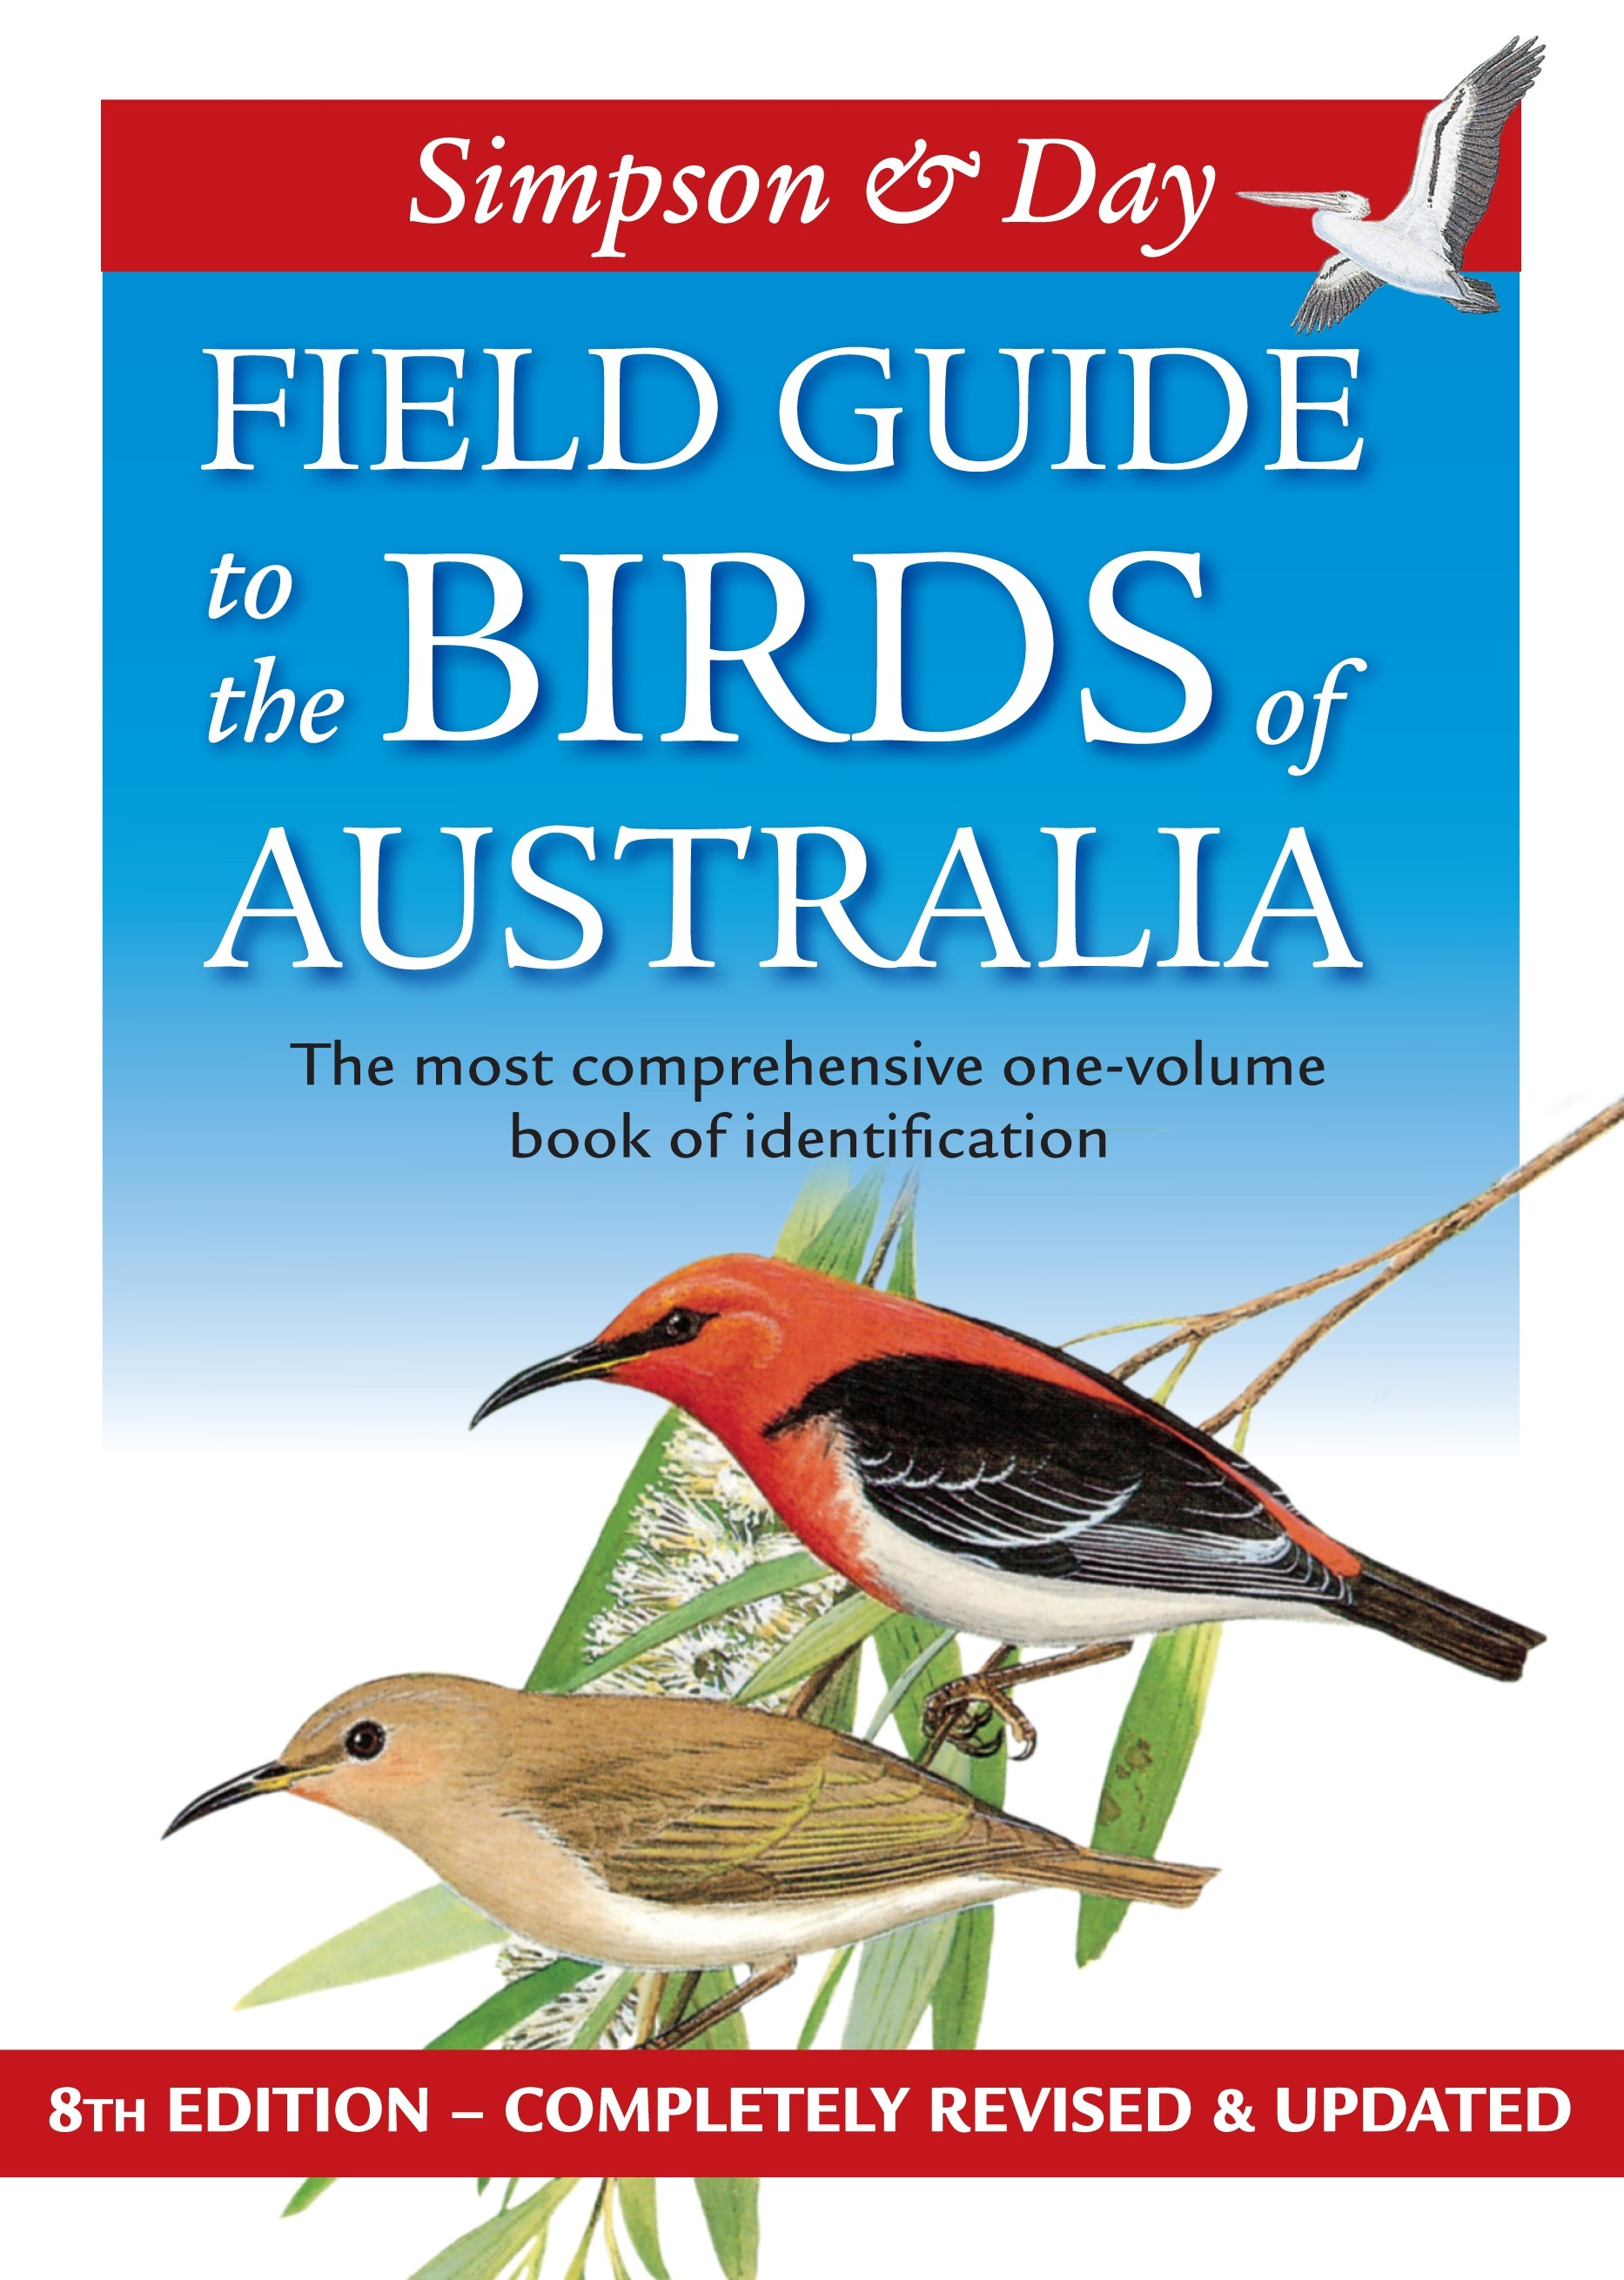 Field Guide to the Birds of Australia by Nicolas Day and Ken Simpson 8th Ed.